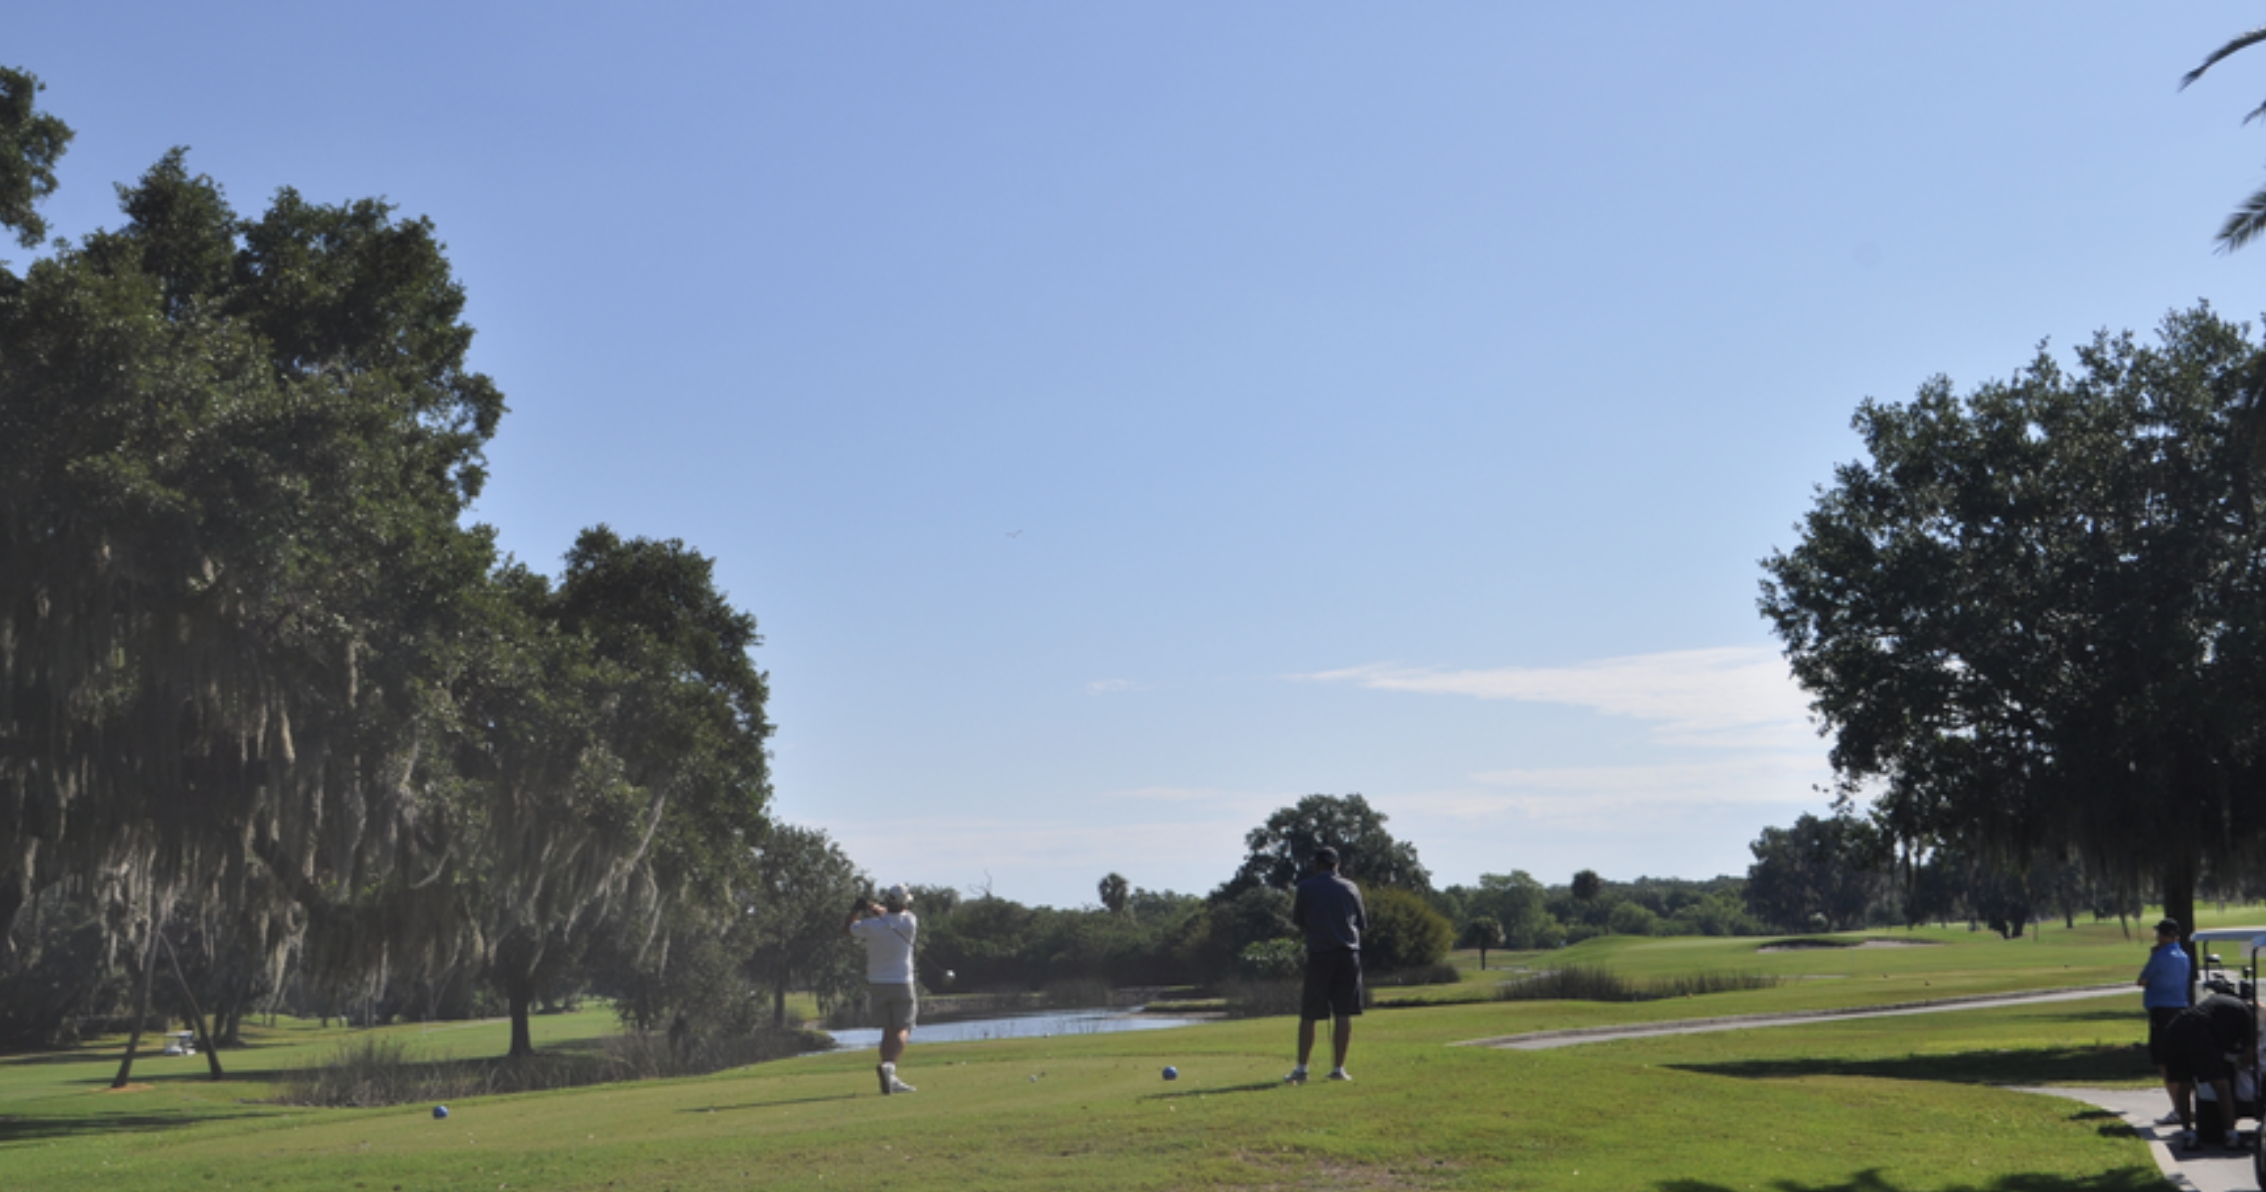 If it undertakes the 45-hole project, the city estimates it would close the Bobby Jones complex in April 2020 and reopen in October 2021. Photograph courtesy of Sarasota Observer.